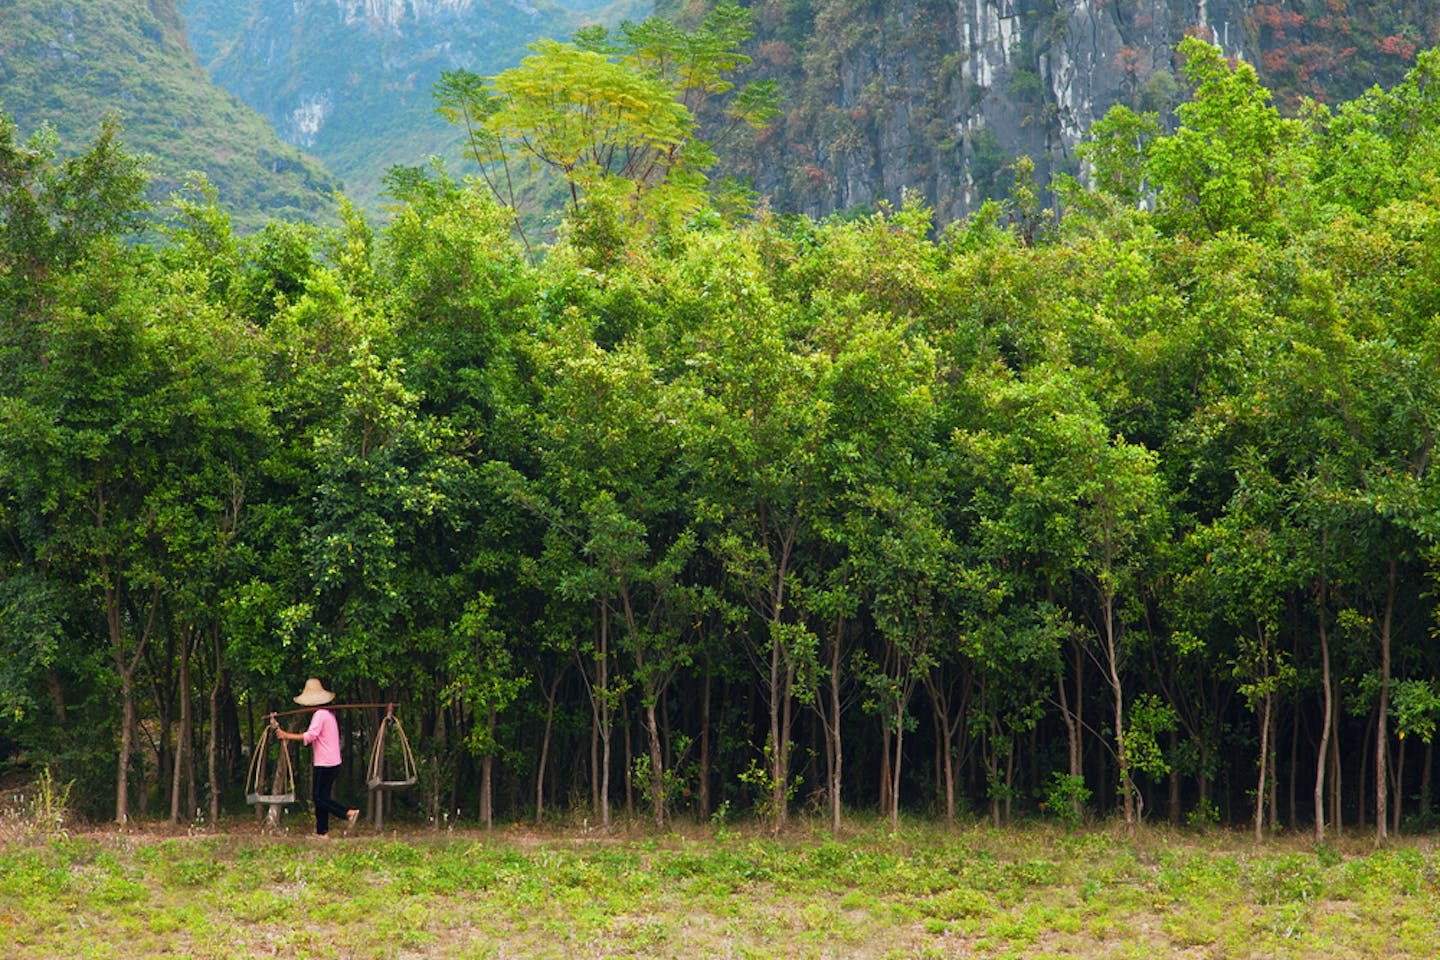 China's forest reforms